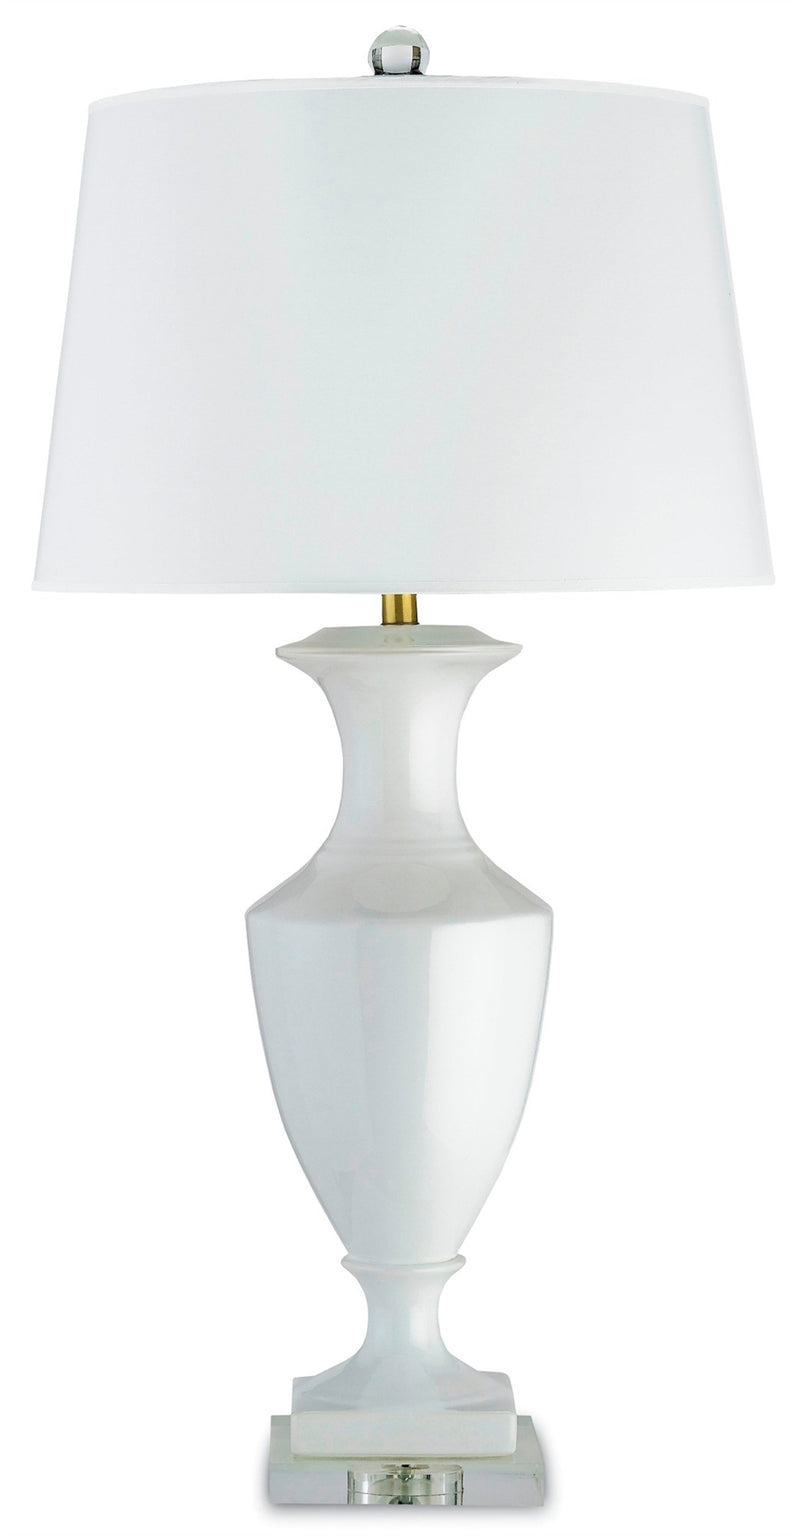 CORNERSTONE HOME INTERIORS - TIMELESS TABLE LAMP